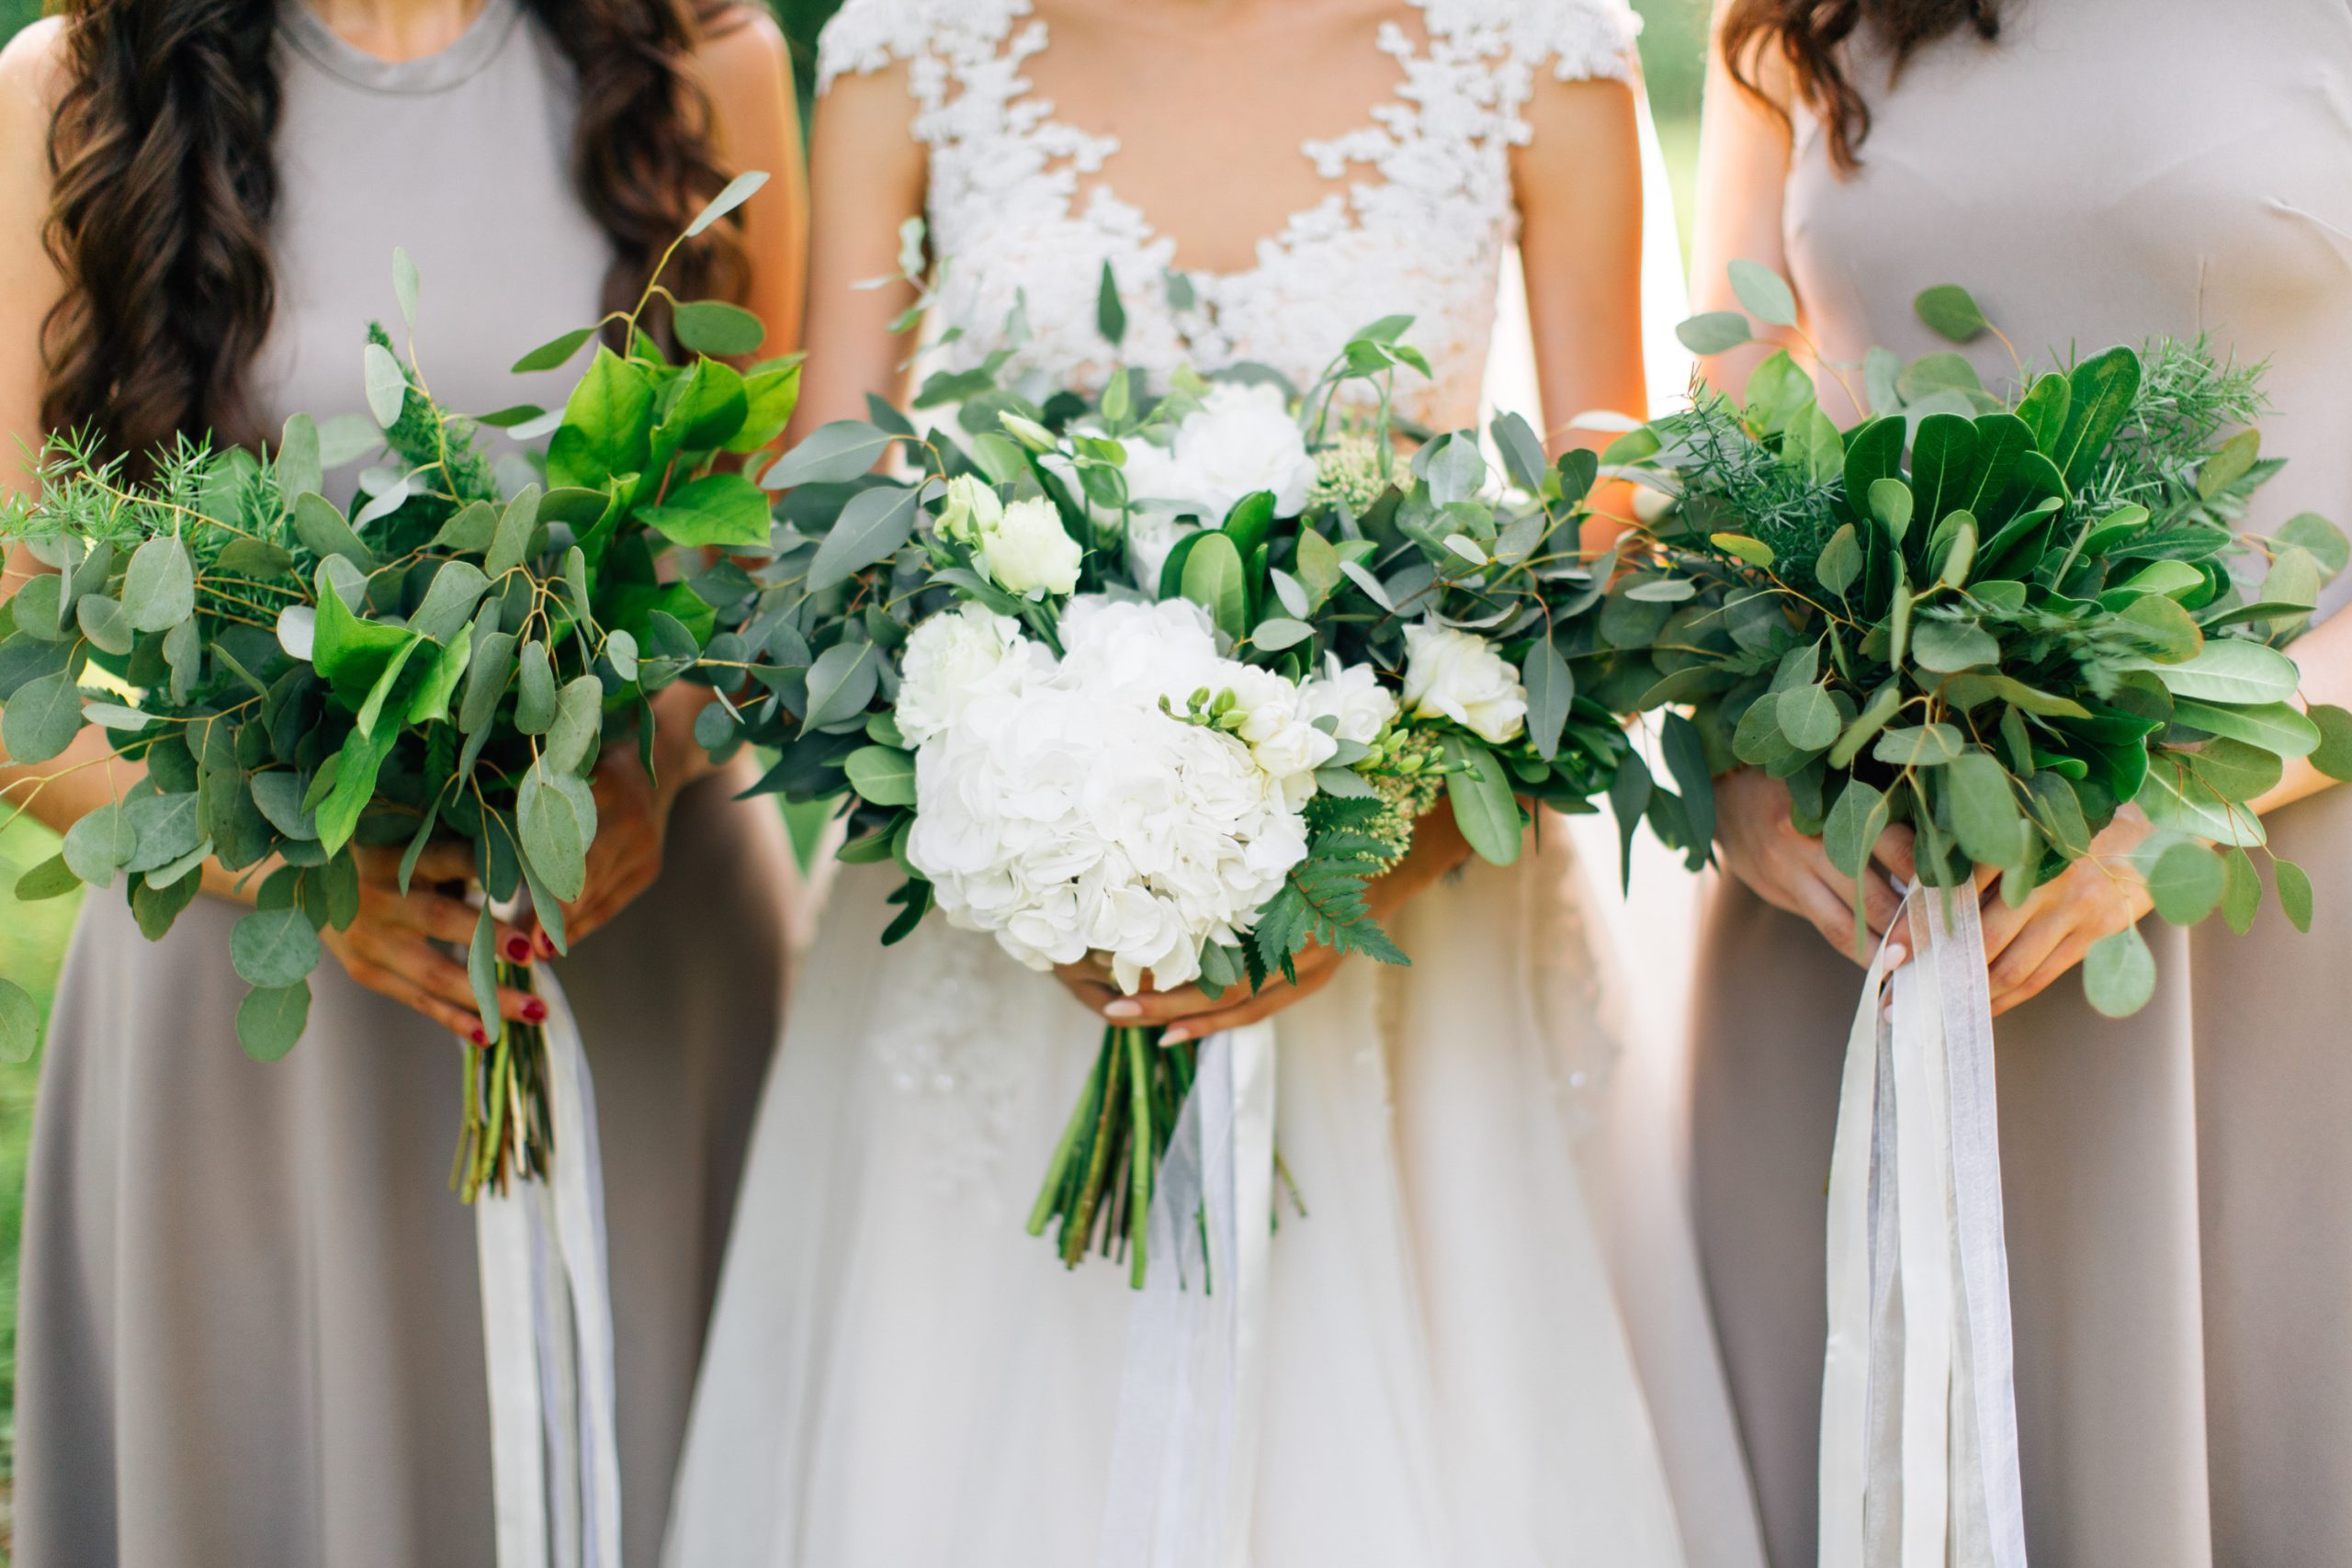 Bridesmaids holding white flower bouquets